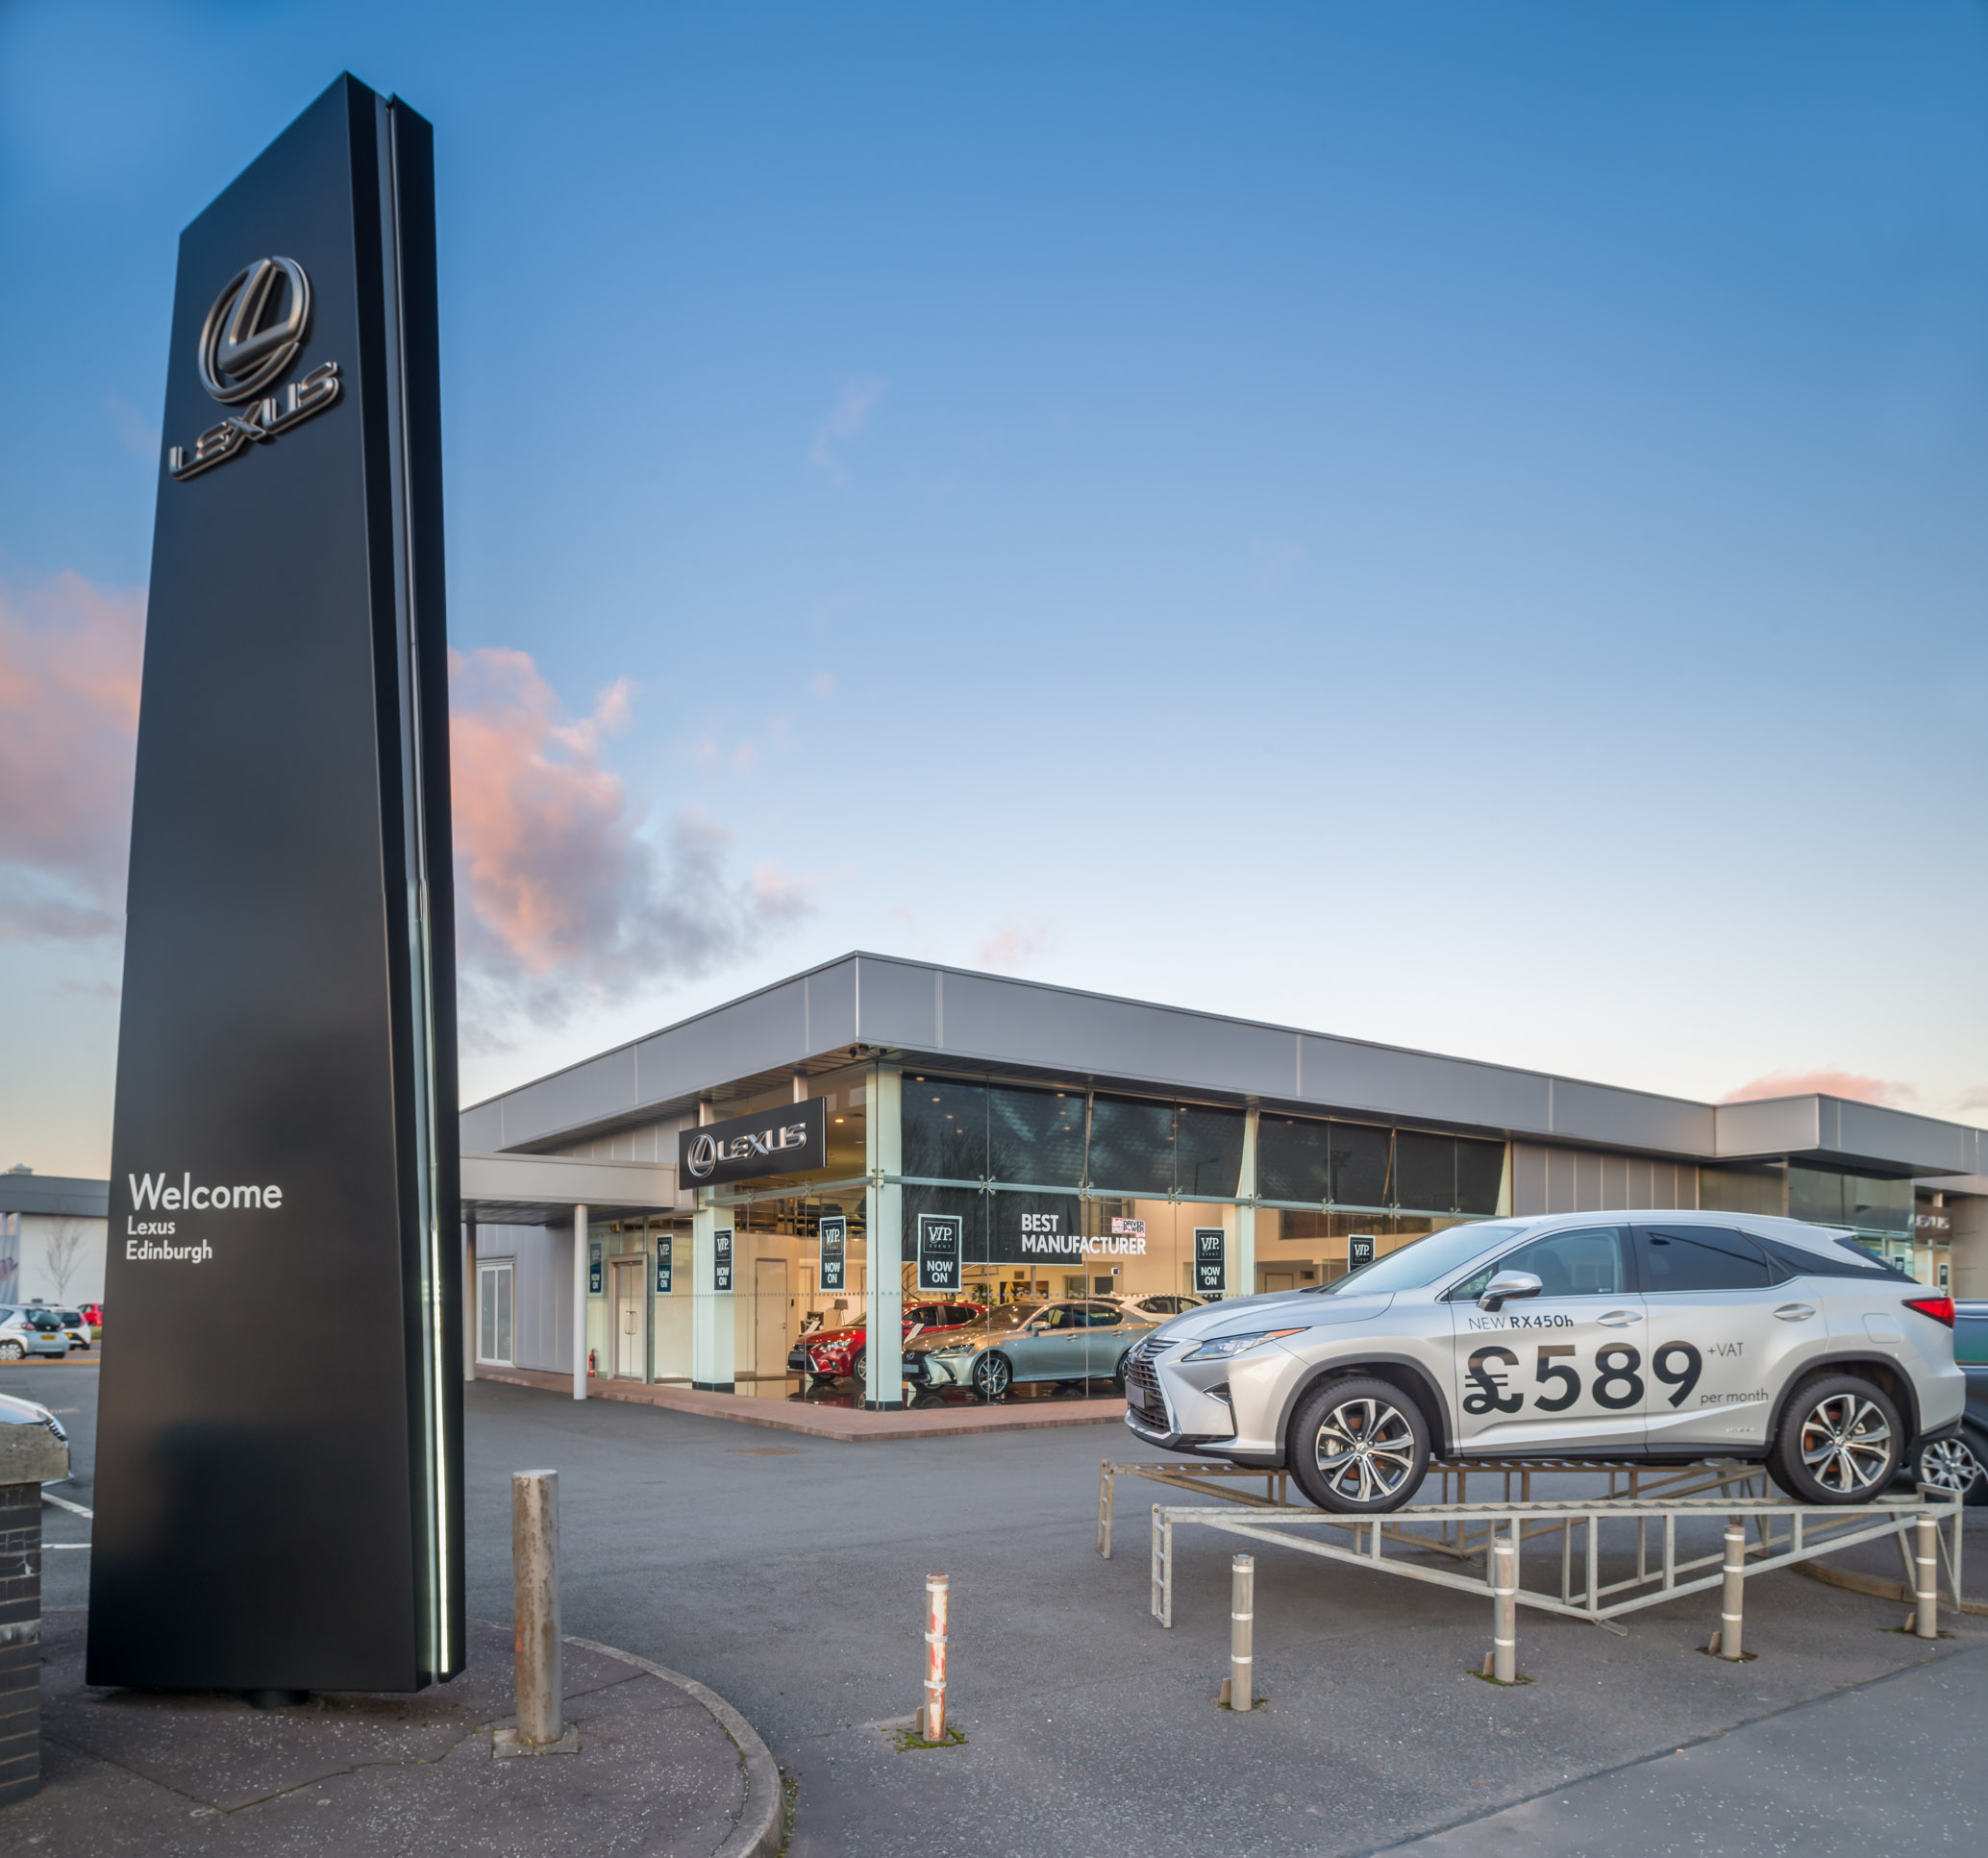 Lexus_Newbridge_Forecourt_Story_Photography.jpg